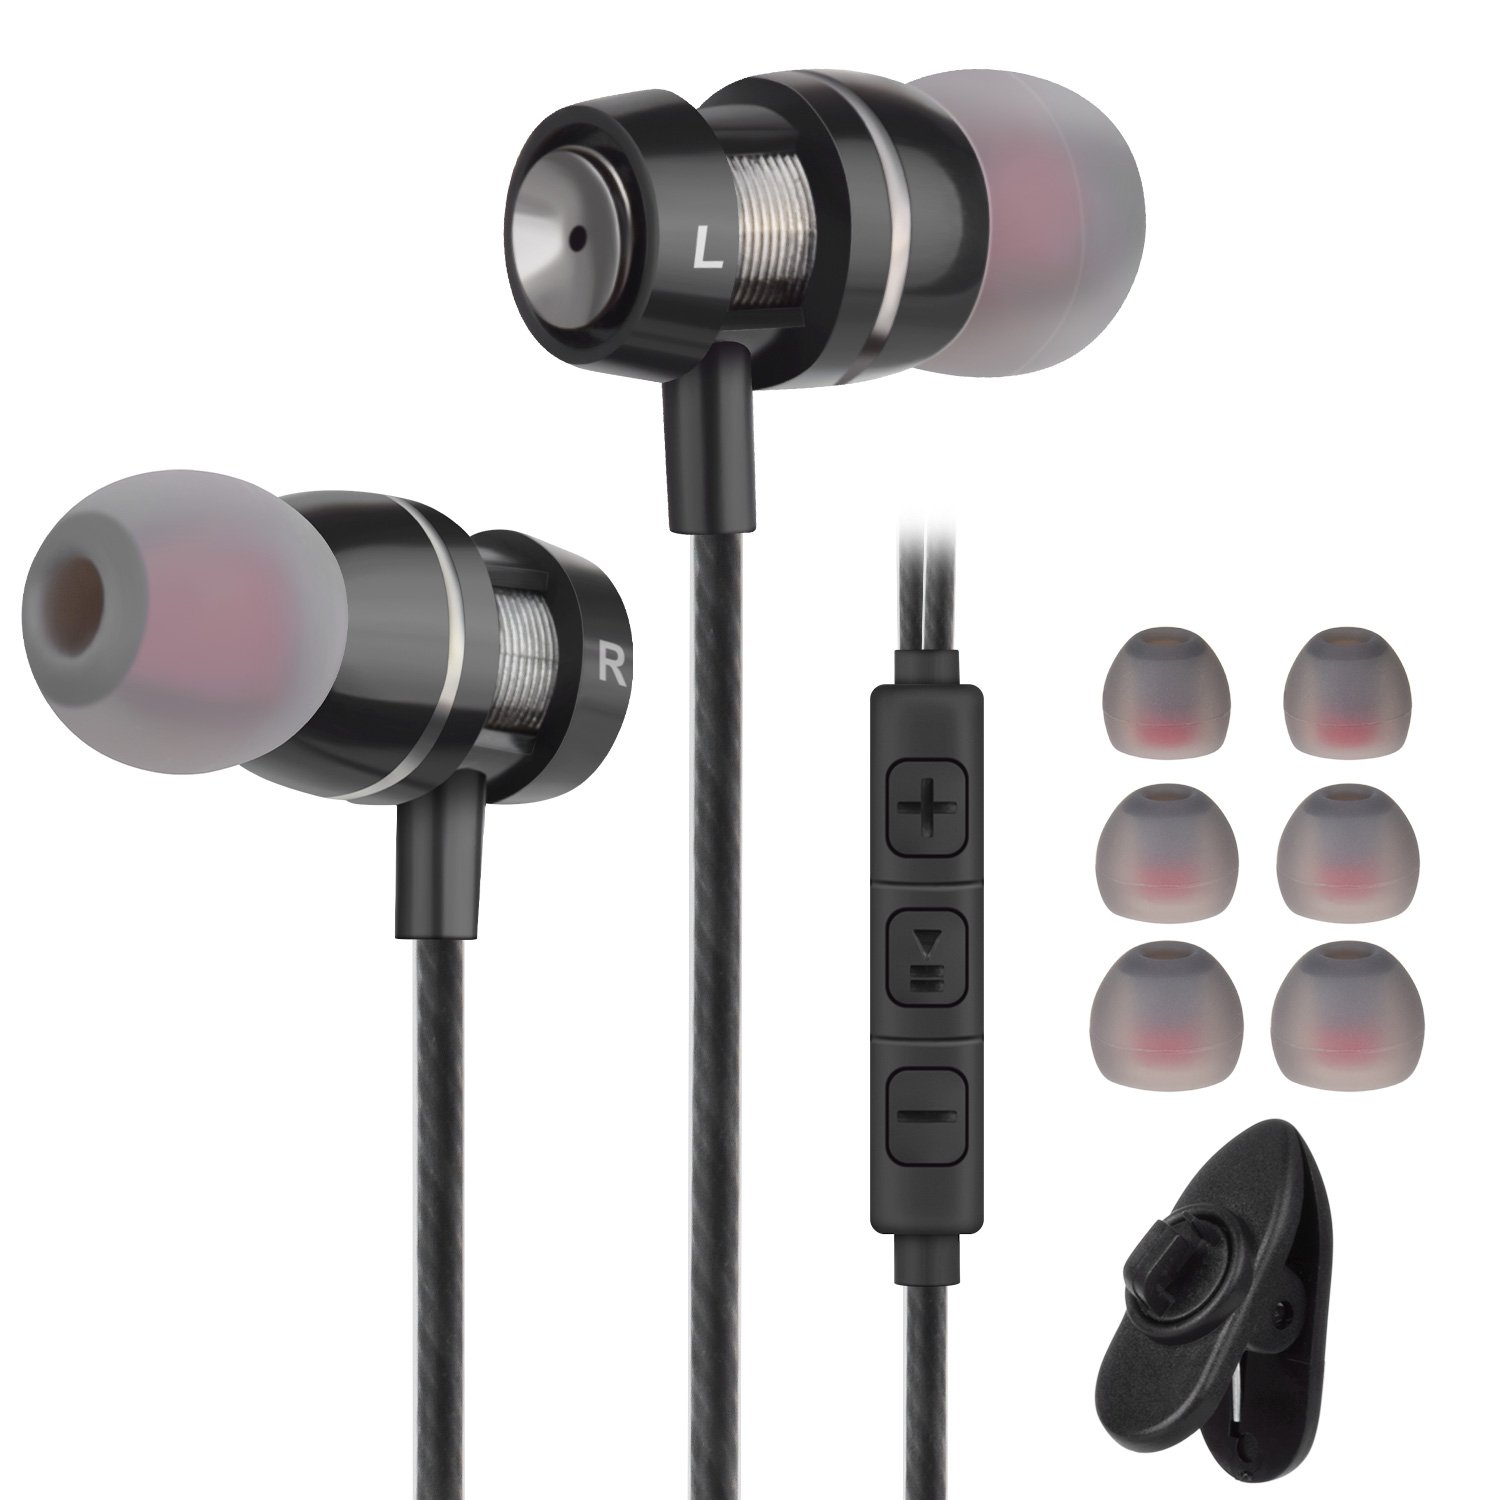 Ear Buds Wired Earphones Earbuds With Remote And Mic 3.5mm In Ear Earbud Headphones With Microphone And Volume Control Stereo Noise Isolating For Android Phones, iPhone, iPod, iPad, Samsung,HTC,MP3 by Gsebr